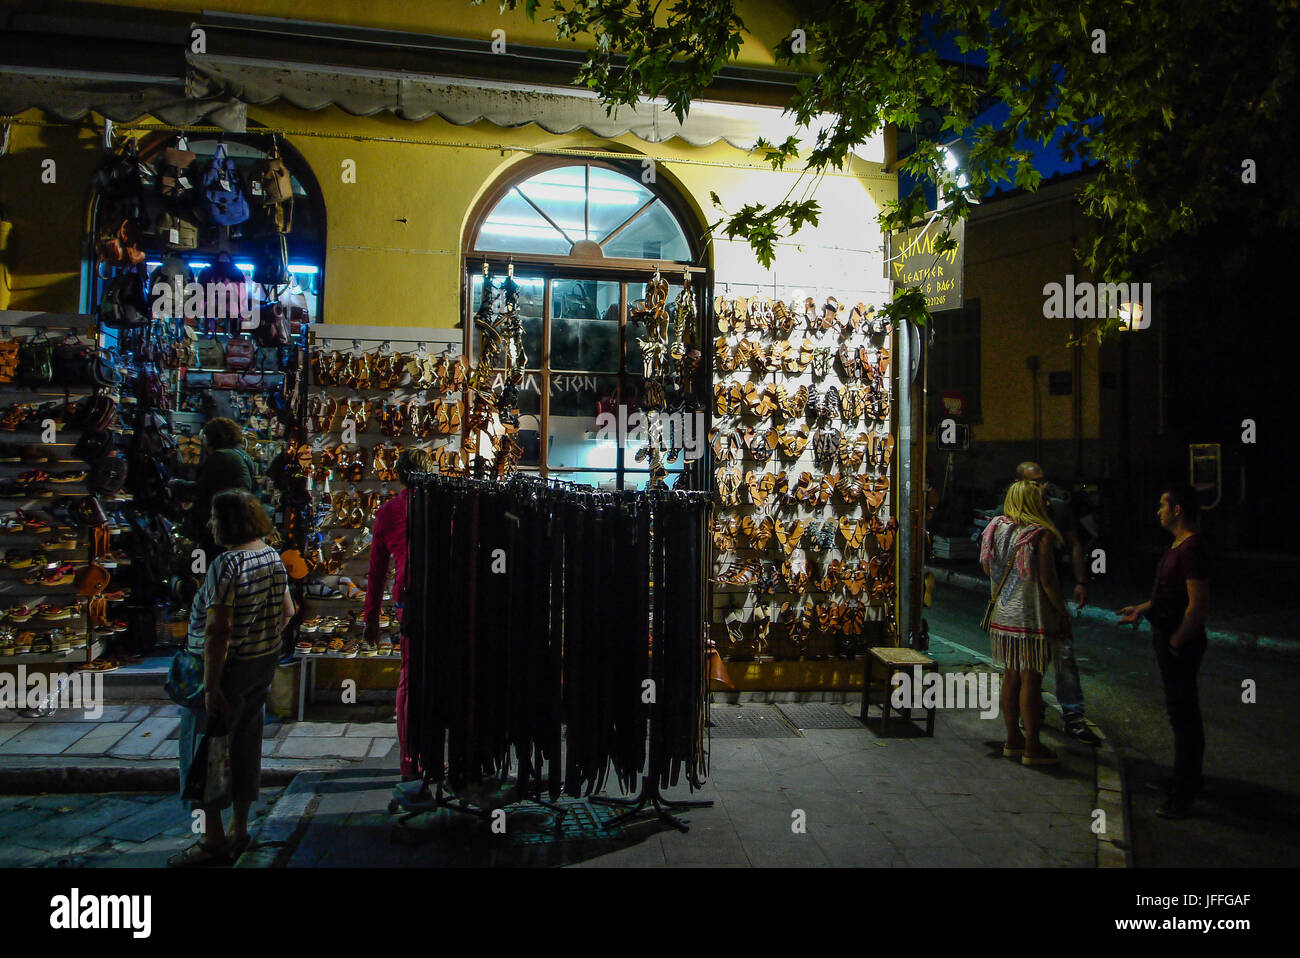 Night scen in Plaka district, Athens (Greece) - Stock Image